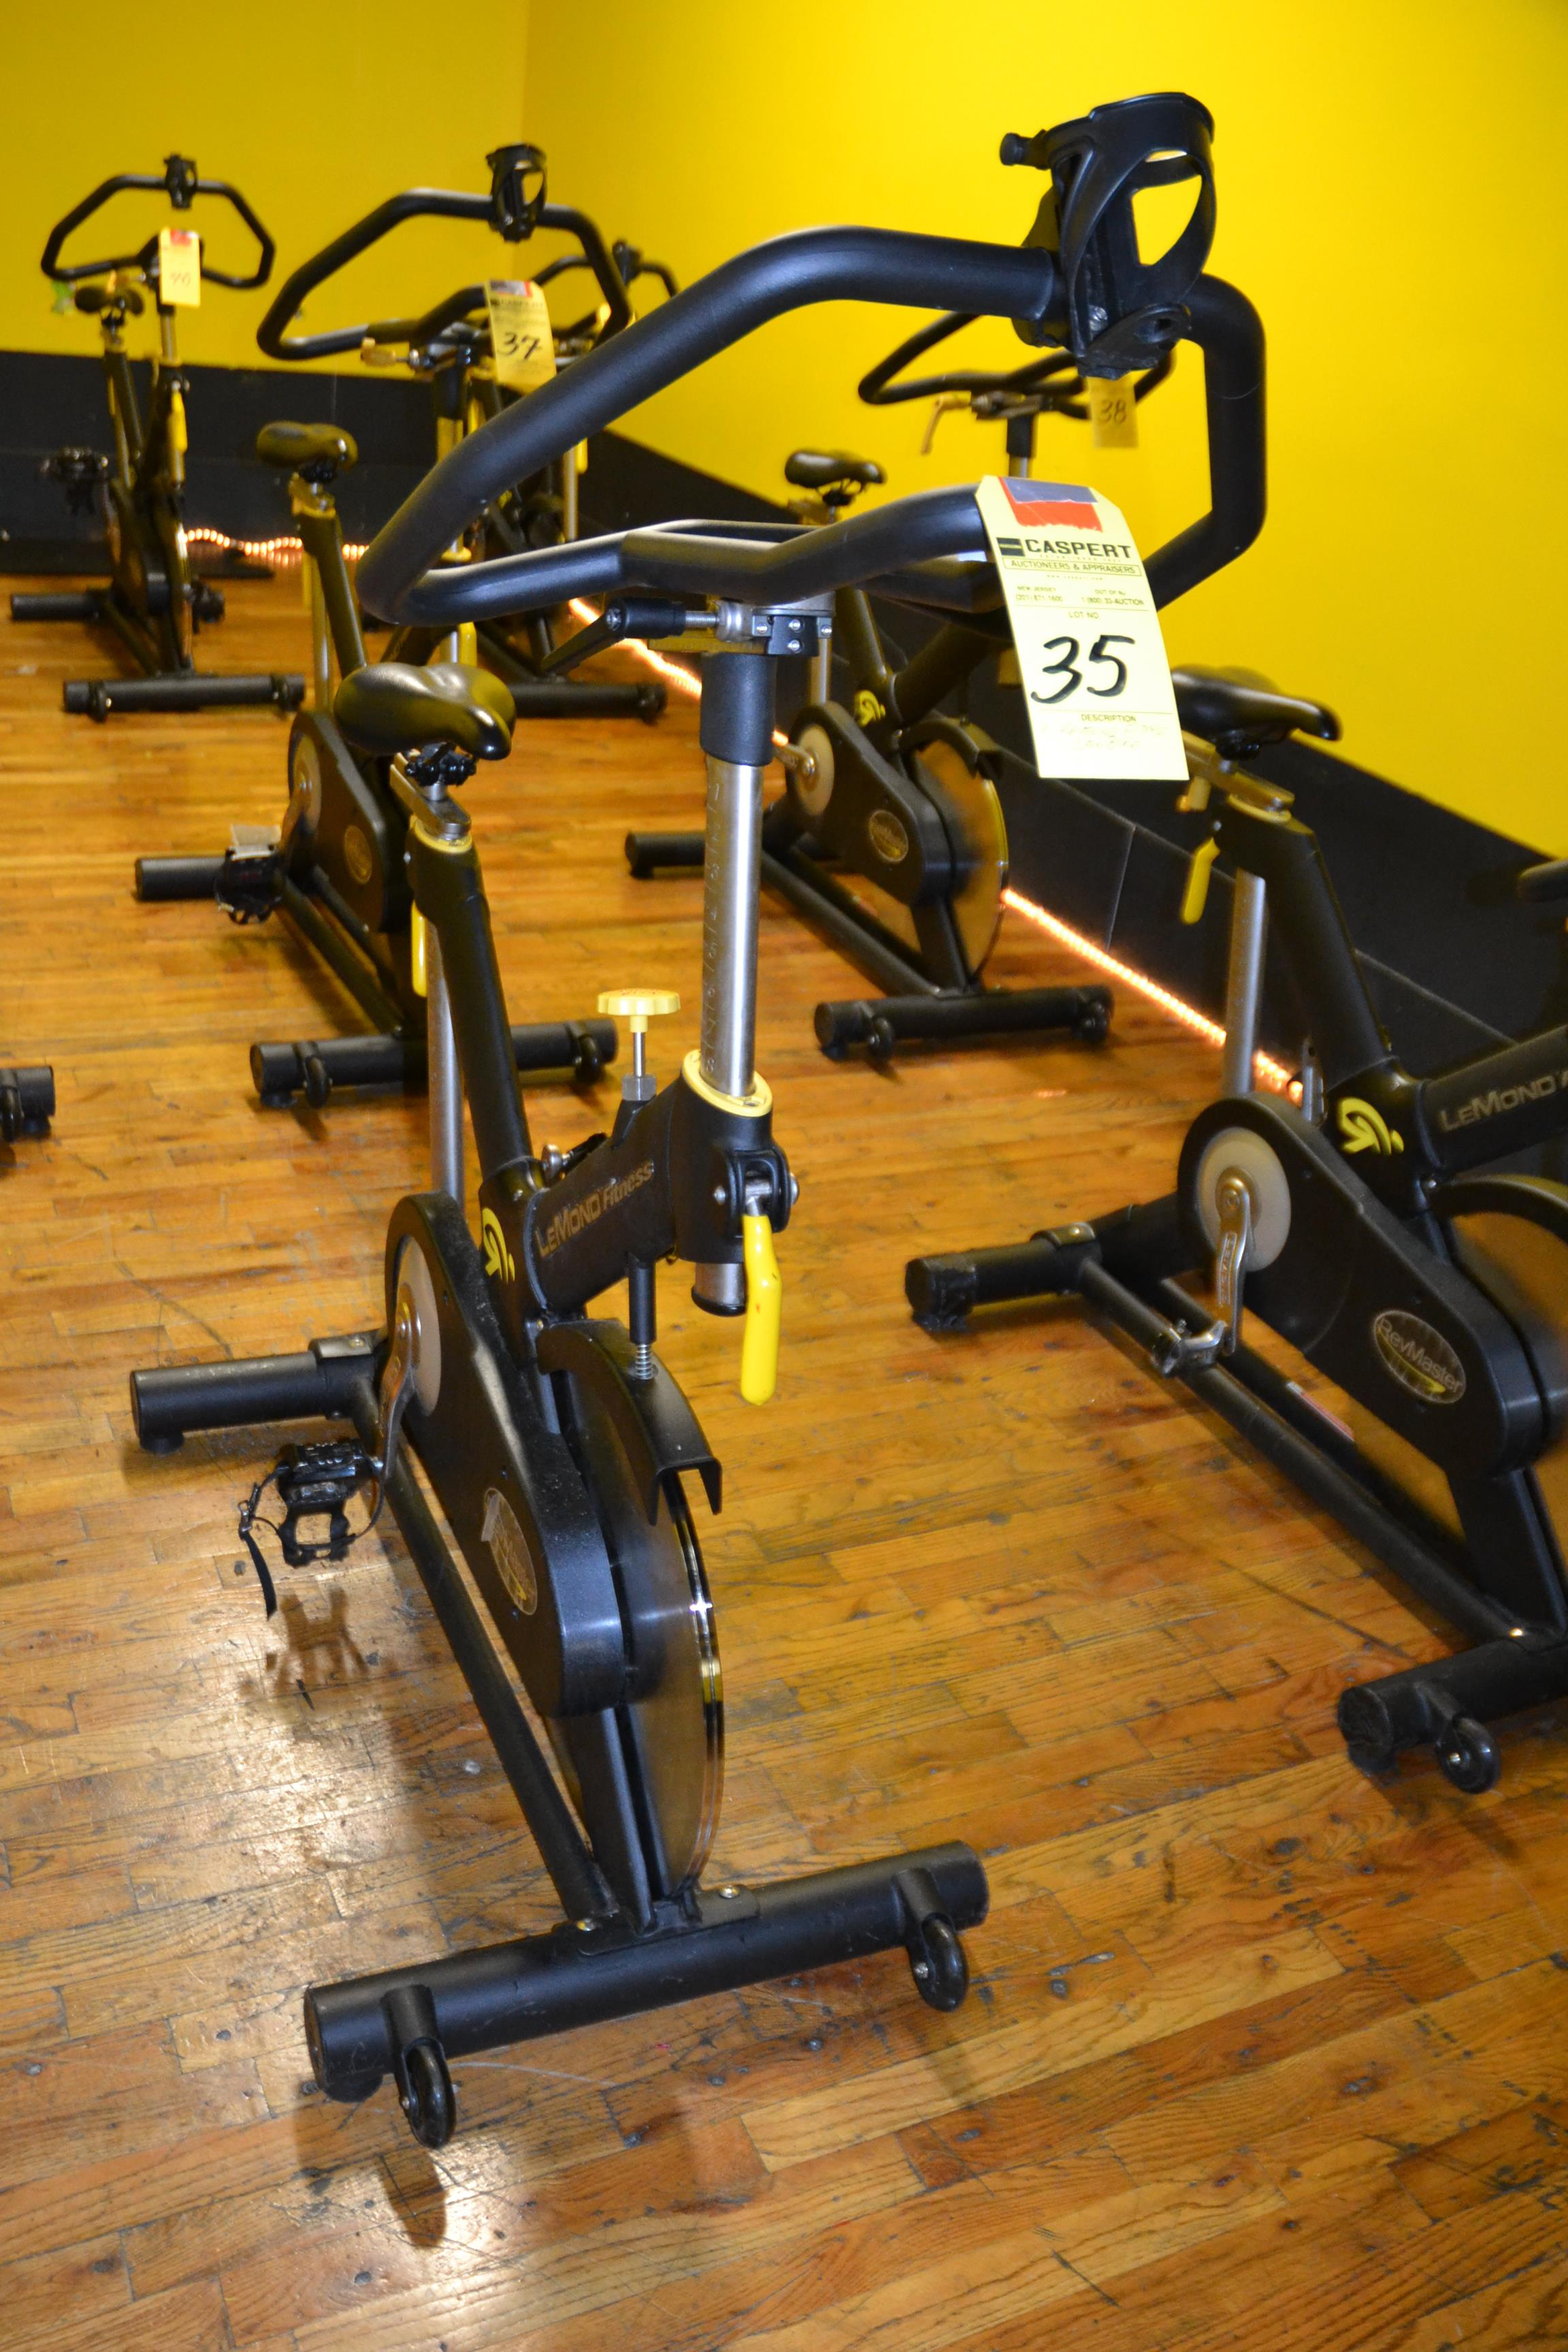 Lot 35 - LEMOND FITNESS 15300-7 SPIN BIKE